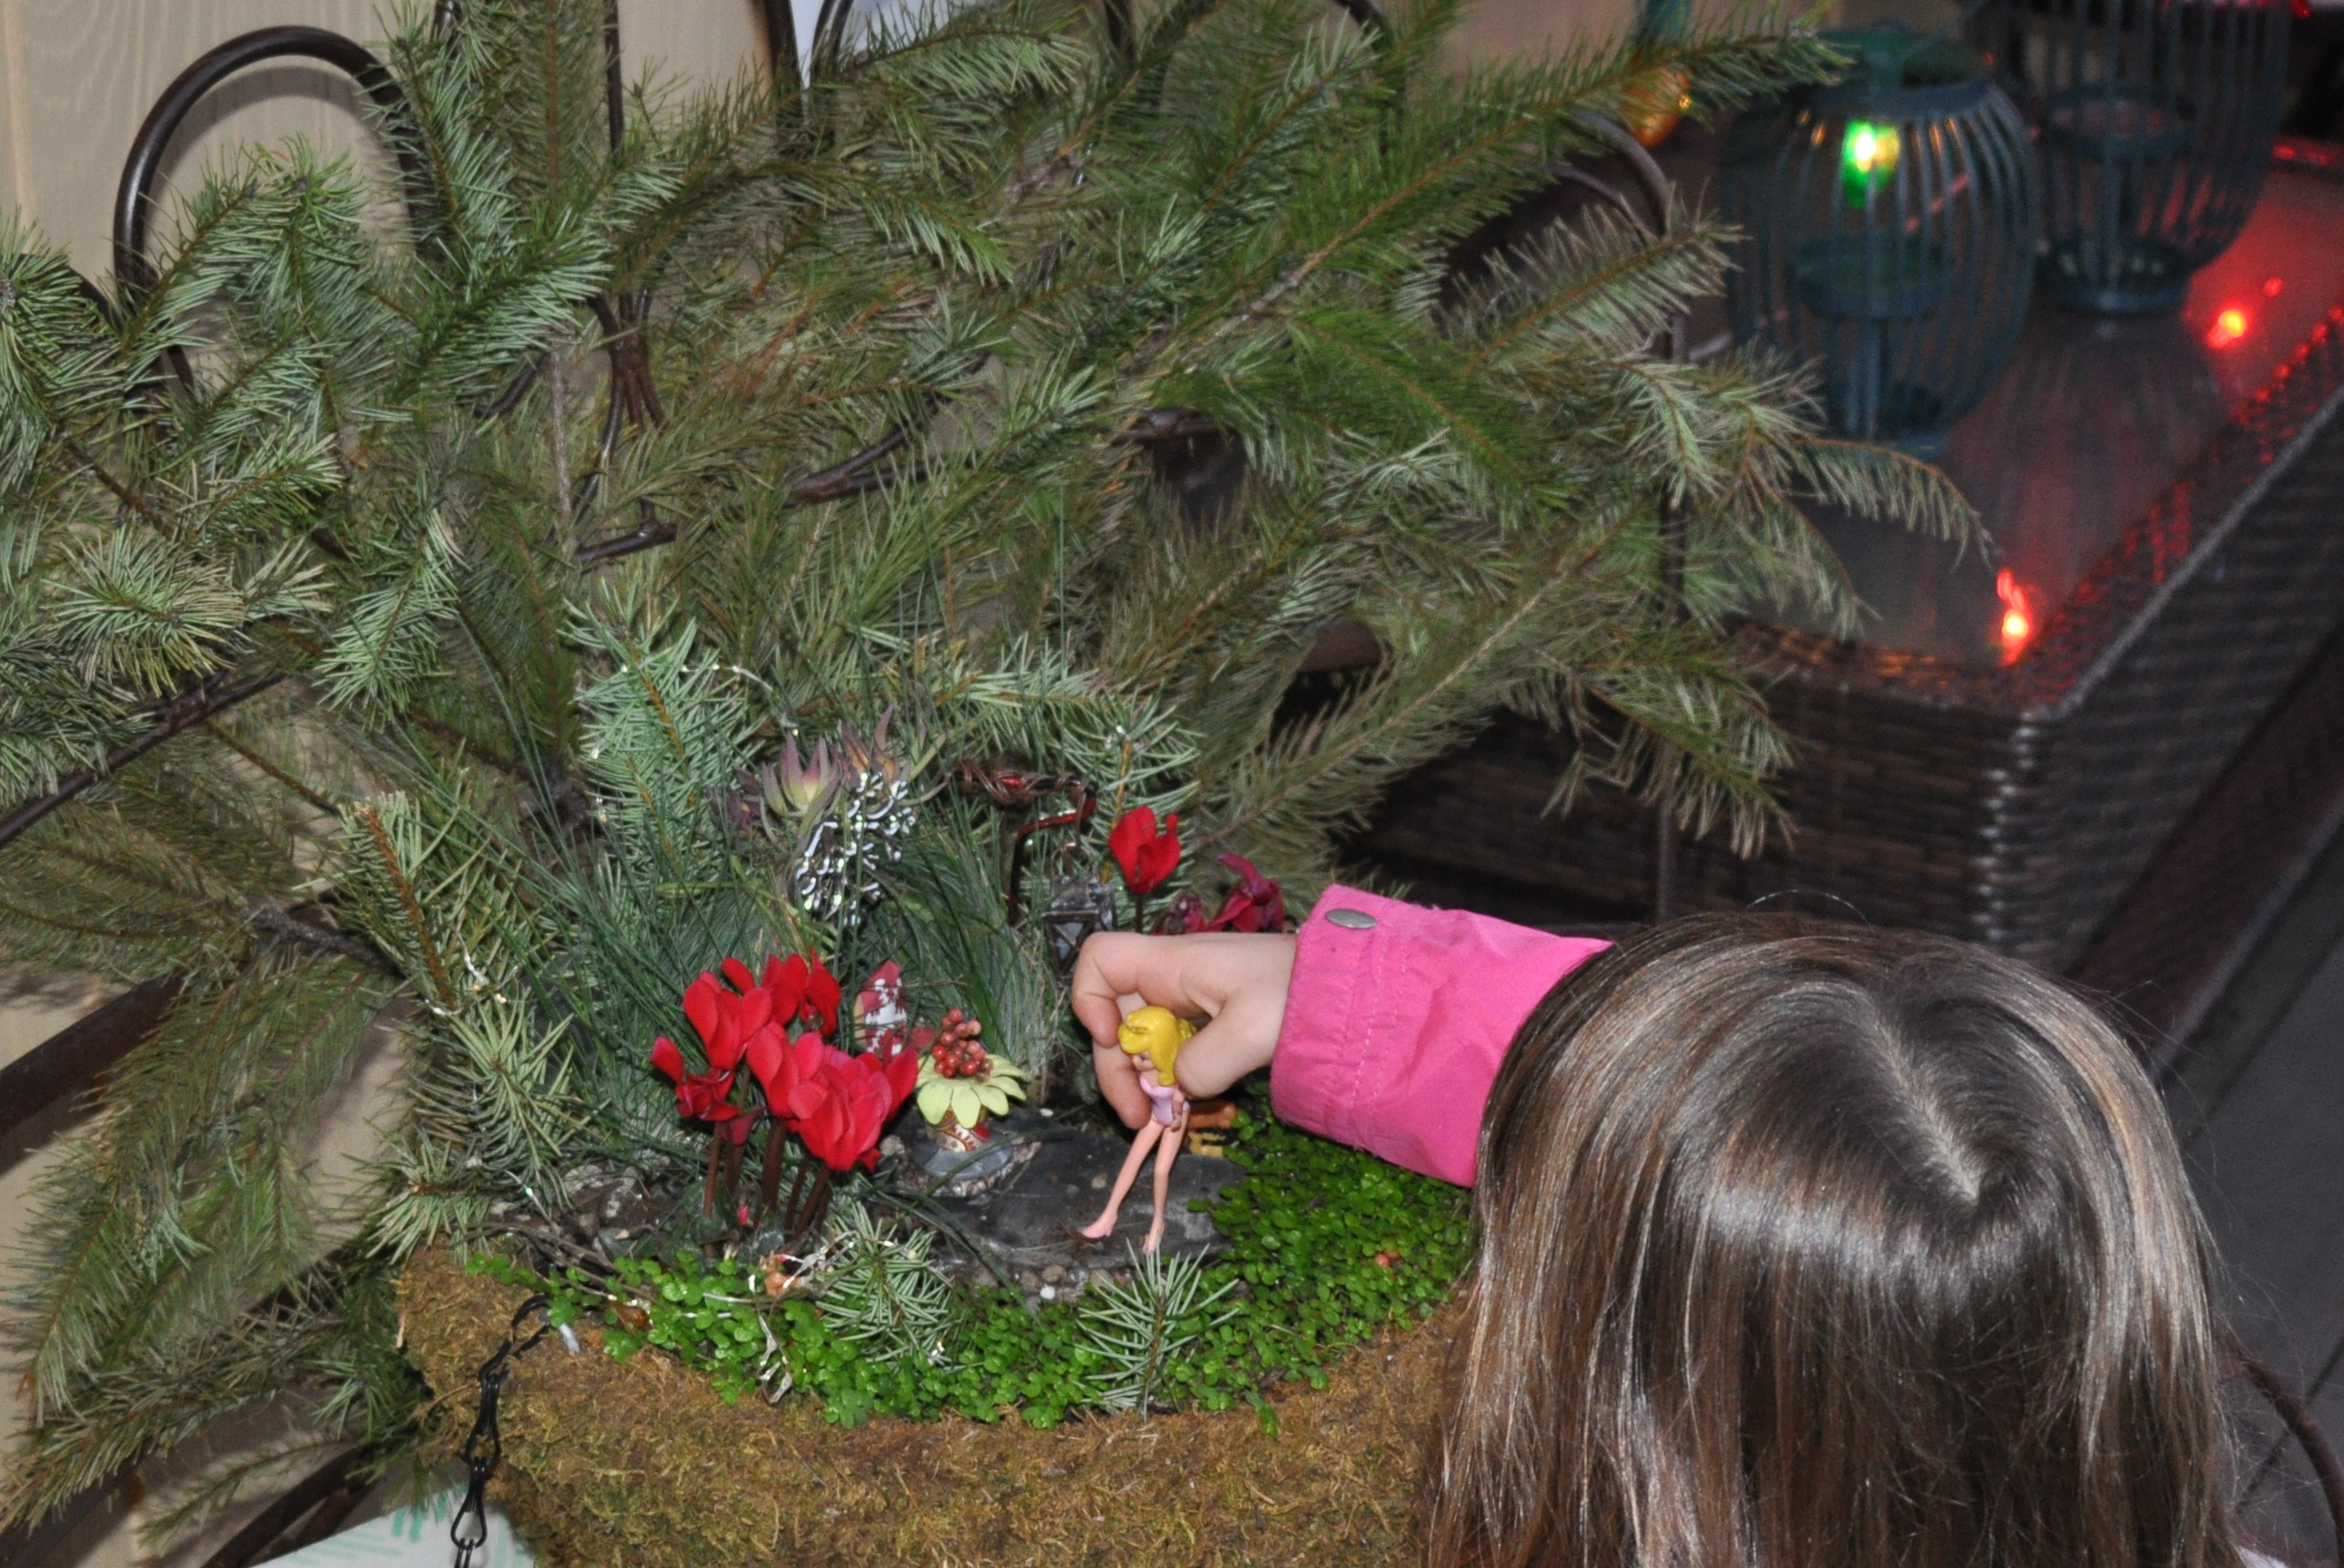 Playing in the fairy garden